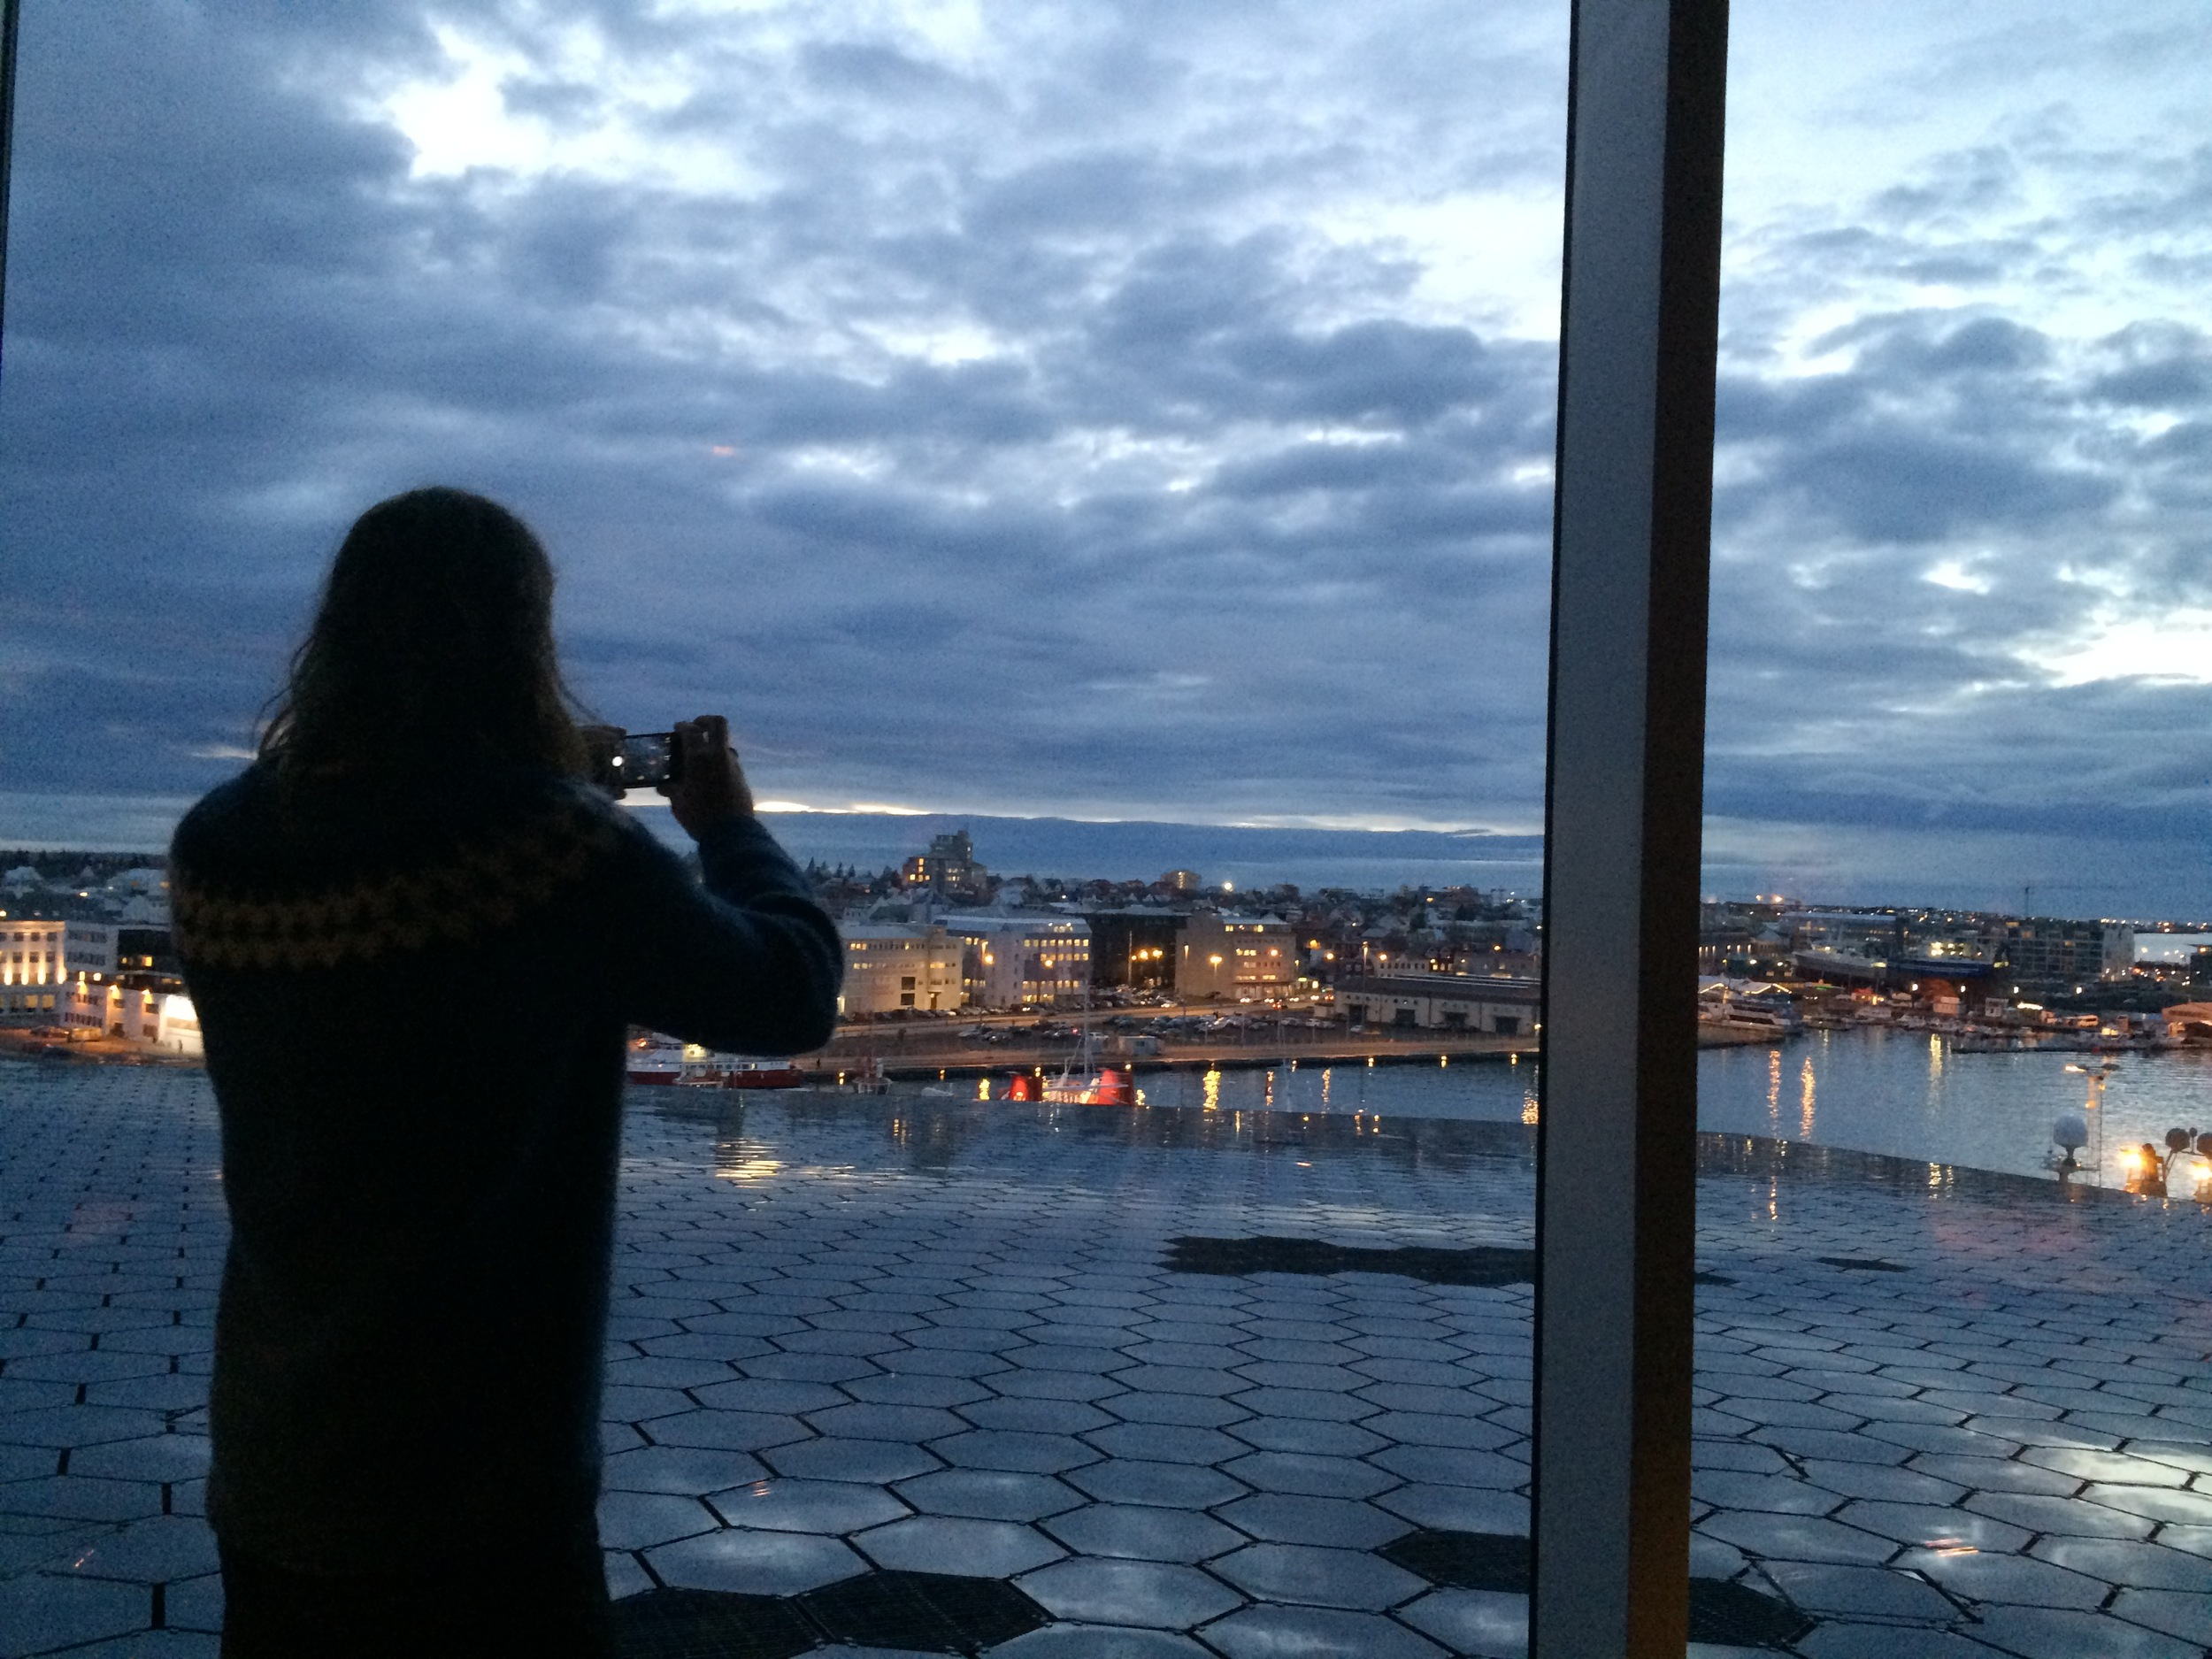 Jed taking a picture of Reykjavik, from Harpa